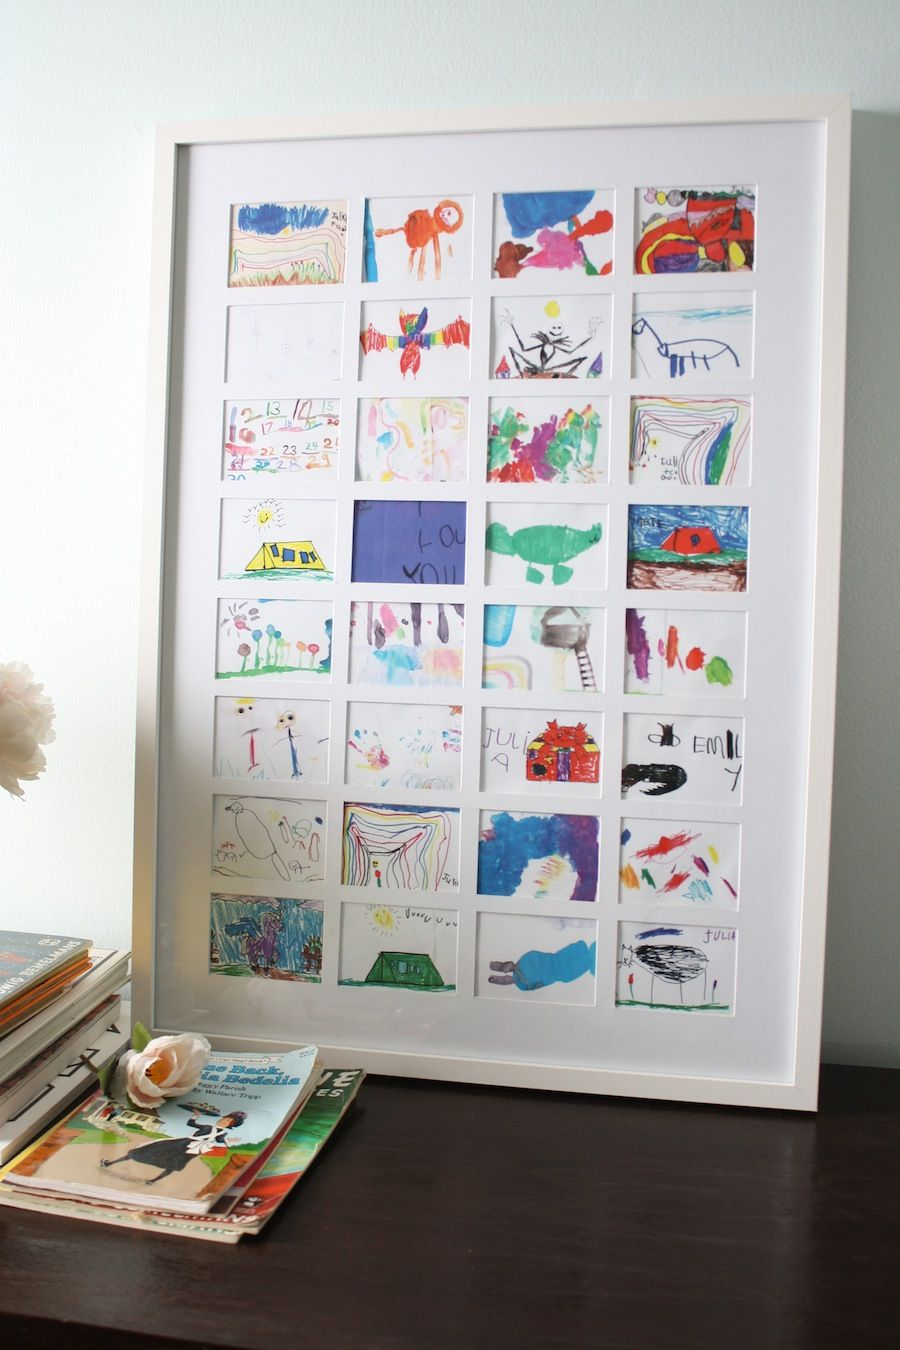 Childrens Artwork Display Art Collage Framing Childrens Art Work Takes A Bit Of Work But